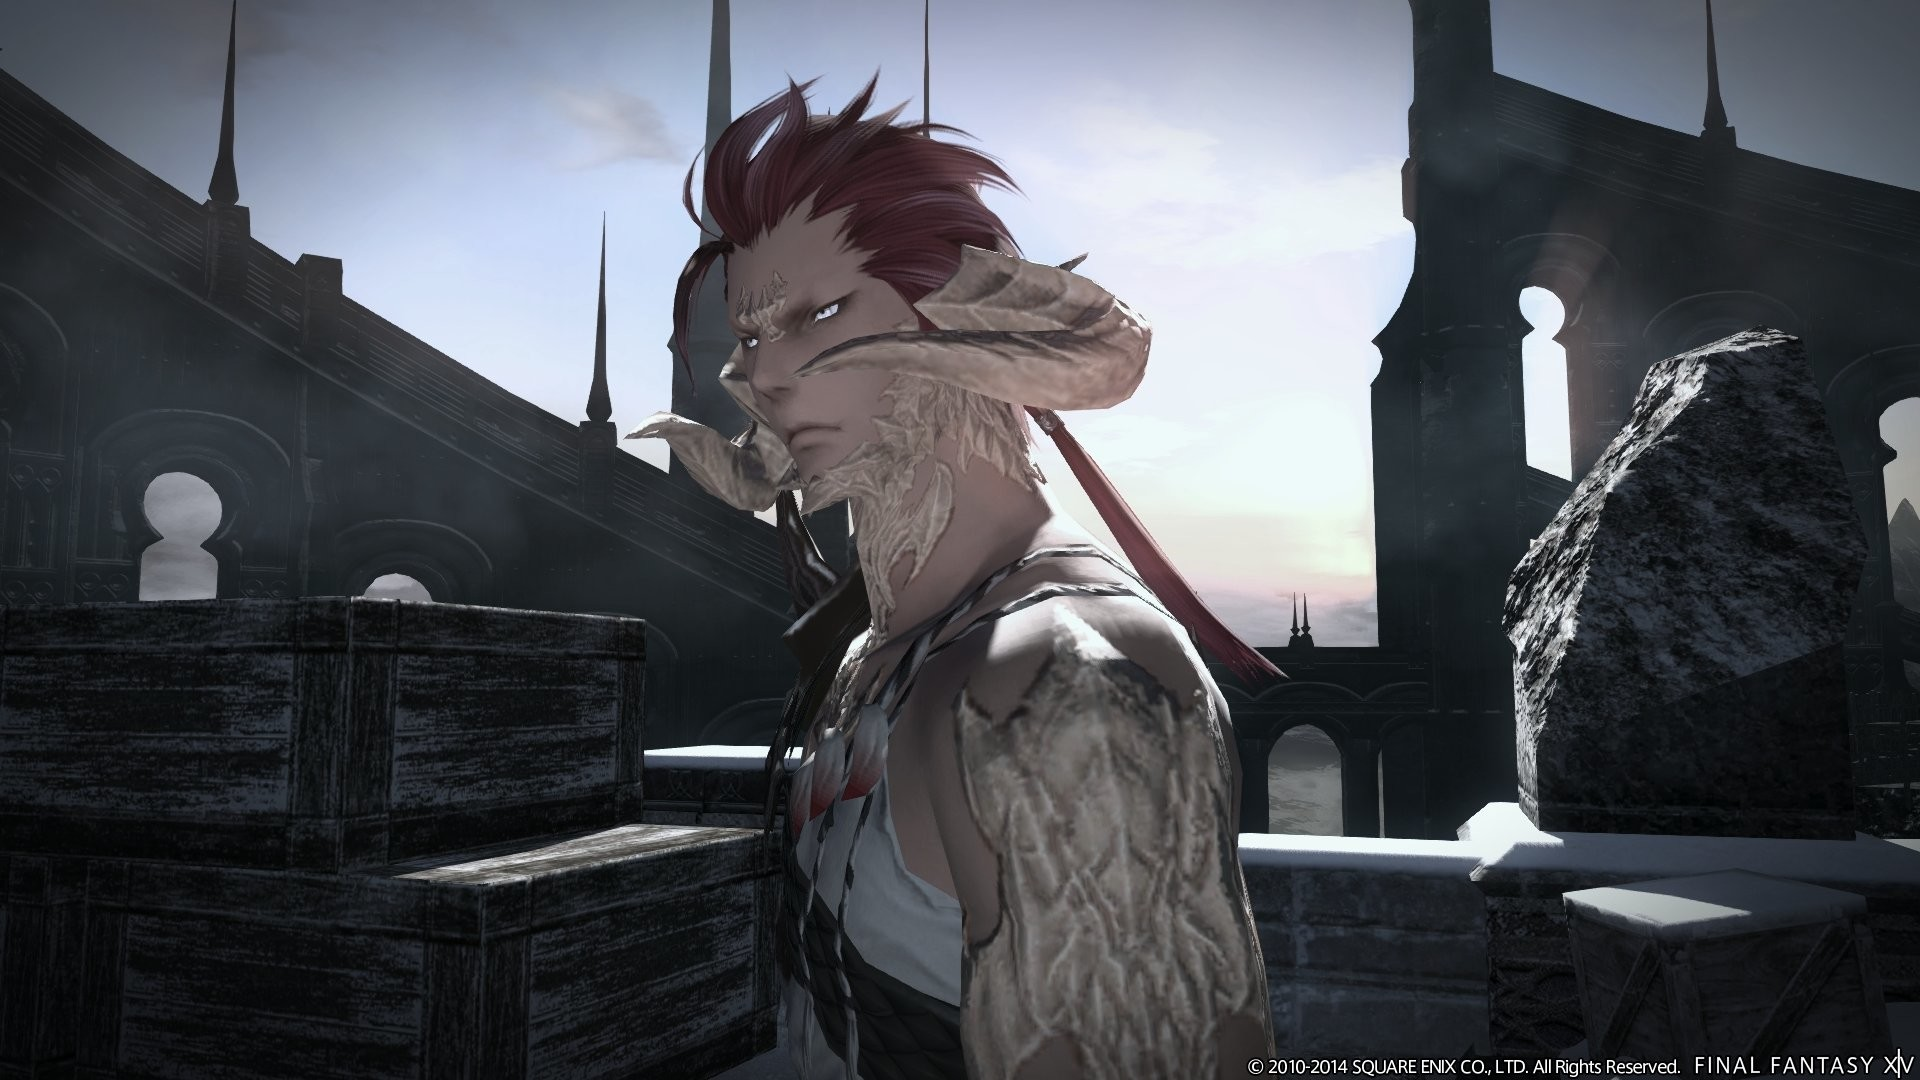 Amazing Final Fantasy XIV Expansion Screenshots Show New Jobs, New Race and  More in Shiny 1080p